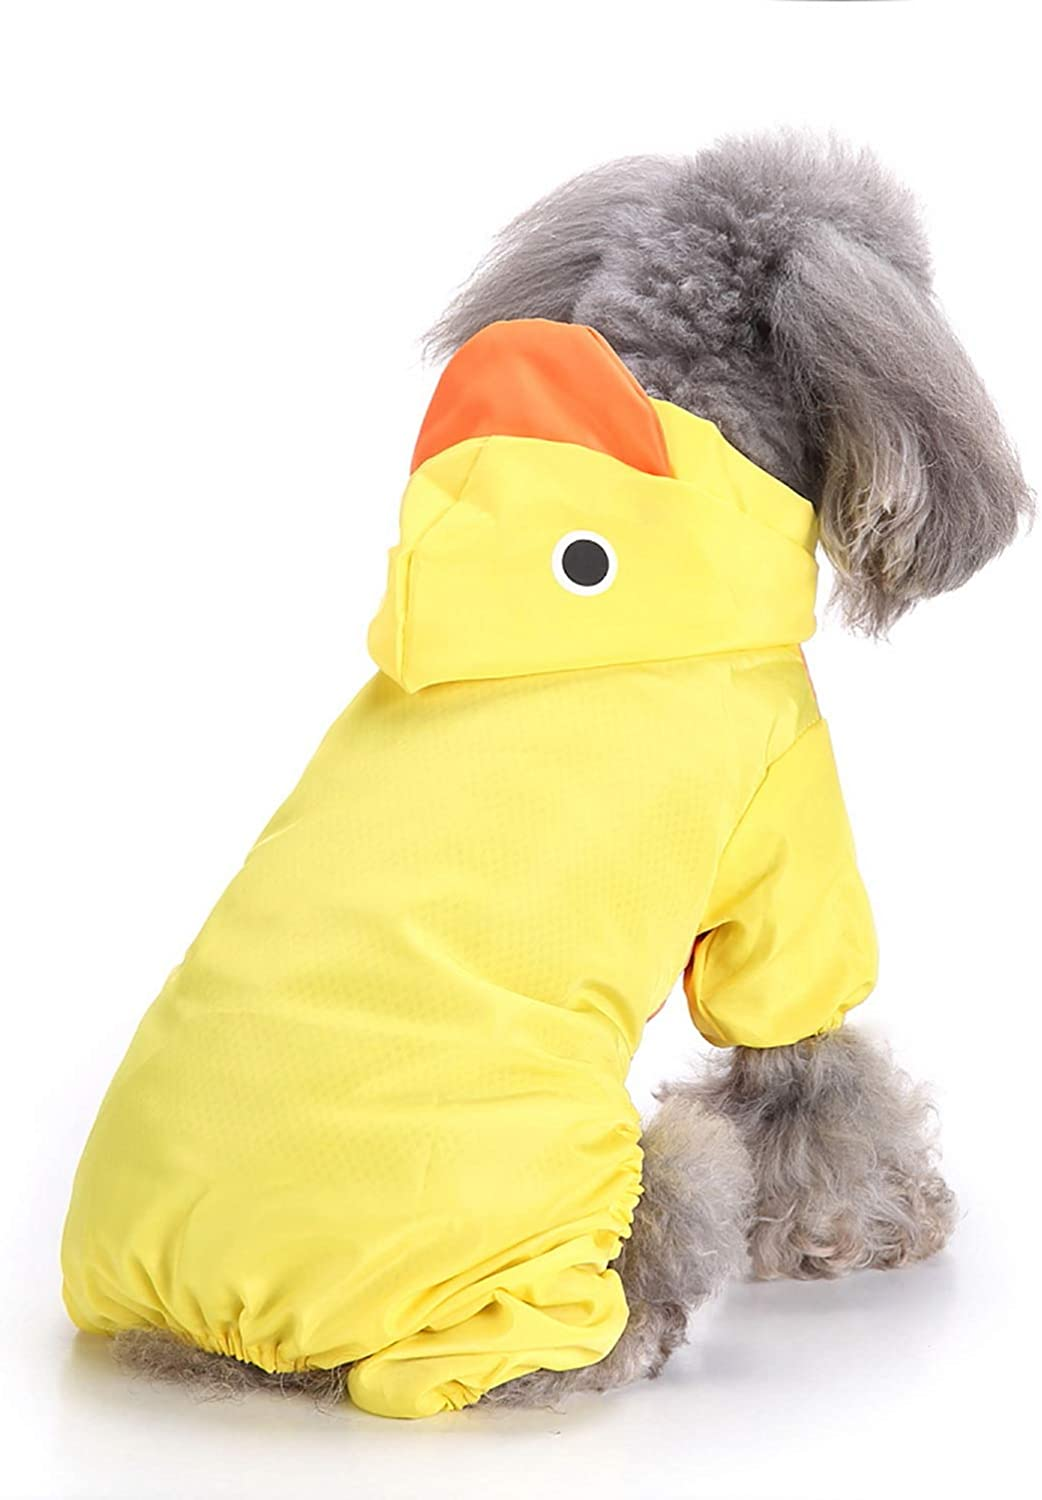 SMALLLEE/_LUCKY/_STORE Cute Cartoon Hooded Raincoat for Small Dogs with Leash D-Ring Puppy Botton Down Rain Jacket Jumpsuit Waterproof Rainwear Clothes